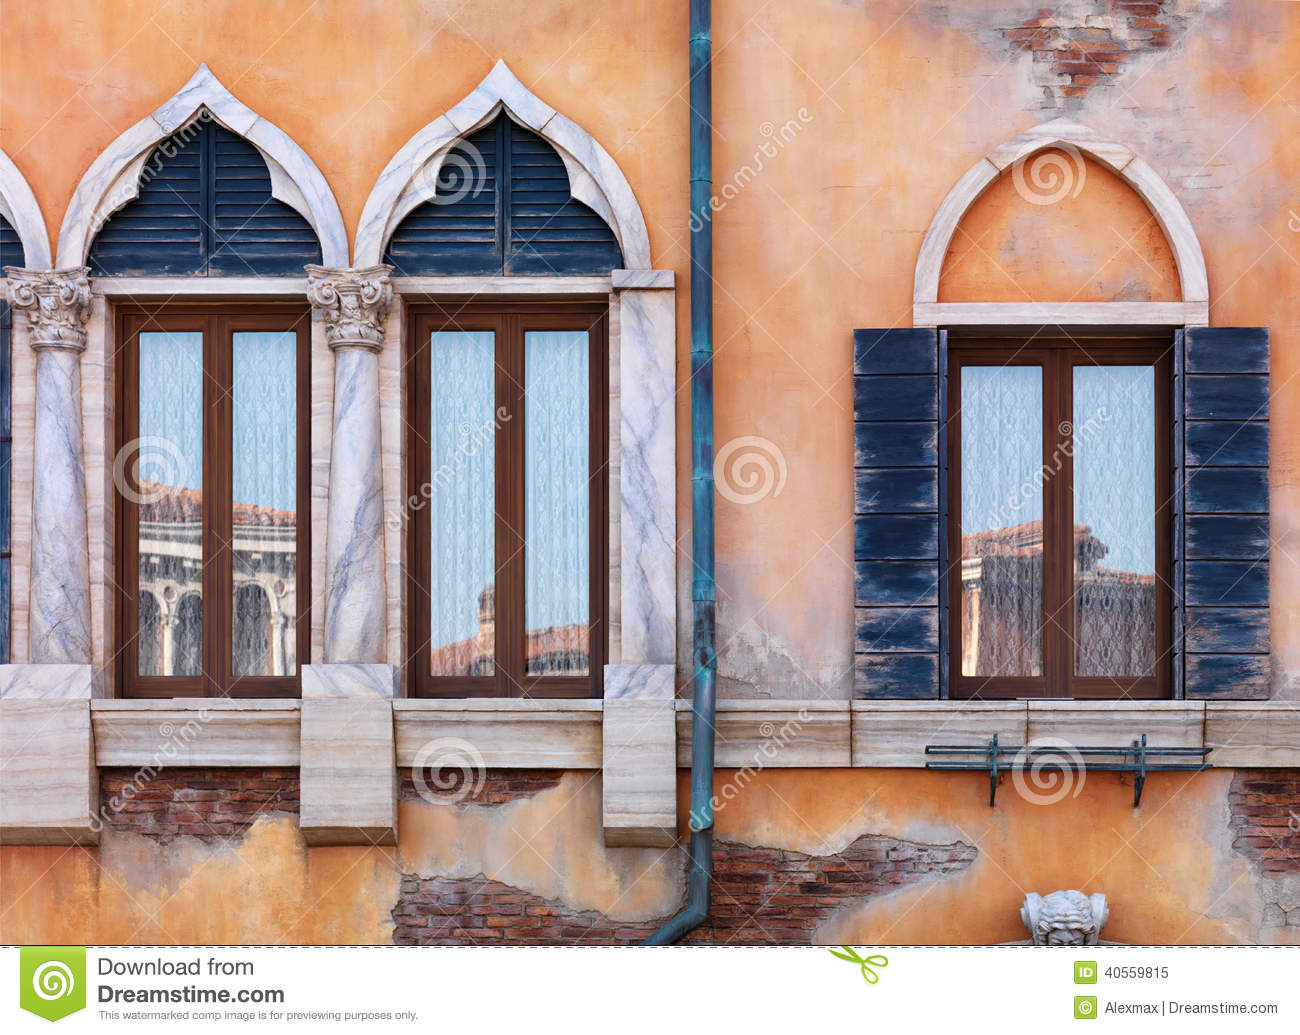 20 moreover 1078598 additionally Royalty Free Stock Photo Old Arched Windows Ve ian House Yellow Wall Antique Building Rustic Texture Image40559815 further Deck Railings as well 70c8f3dc44f1f73a Exterior Home Ranch Style House Modern Ranch Style Homes. on rustic house plans level 1